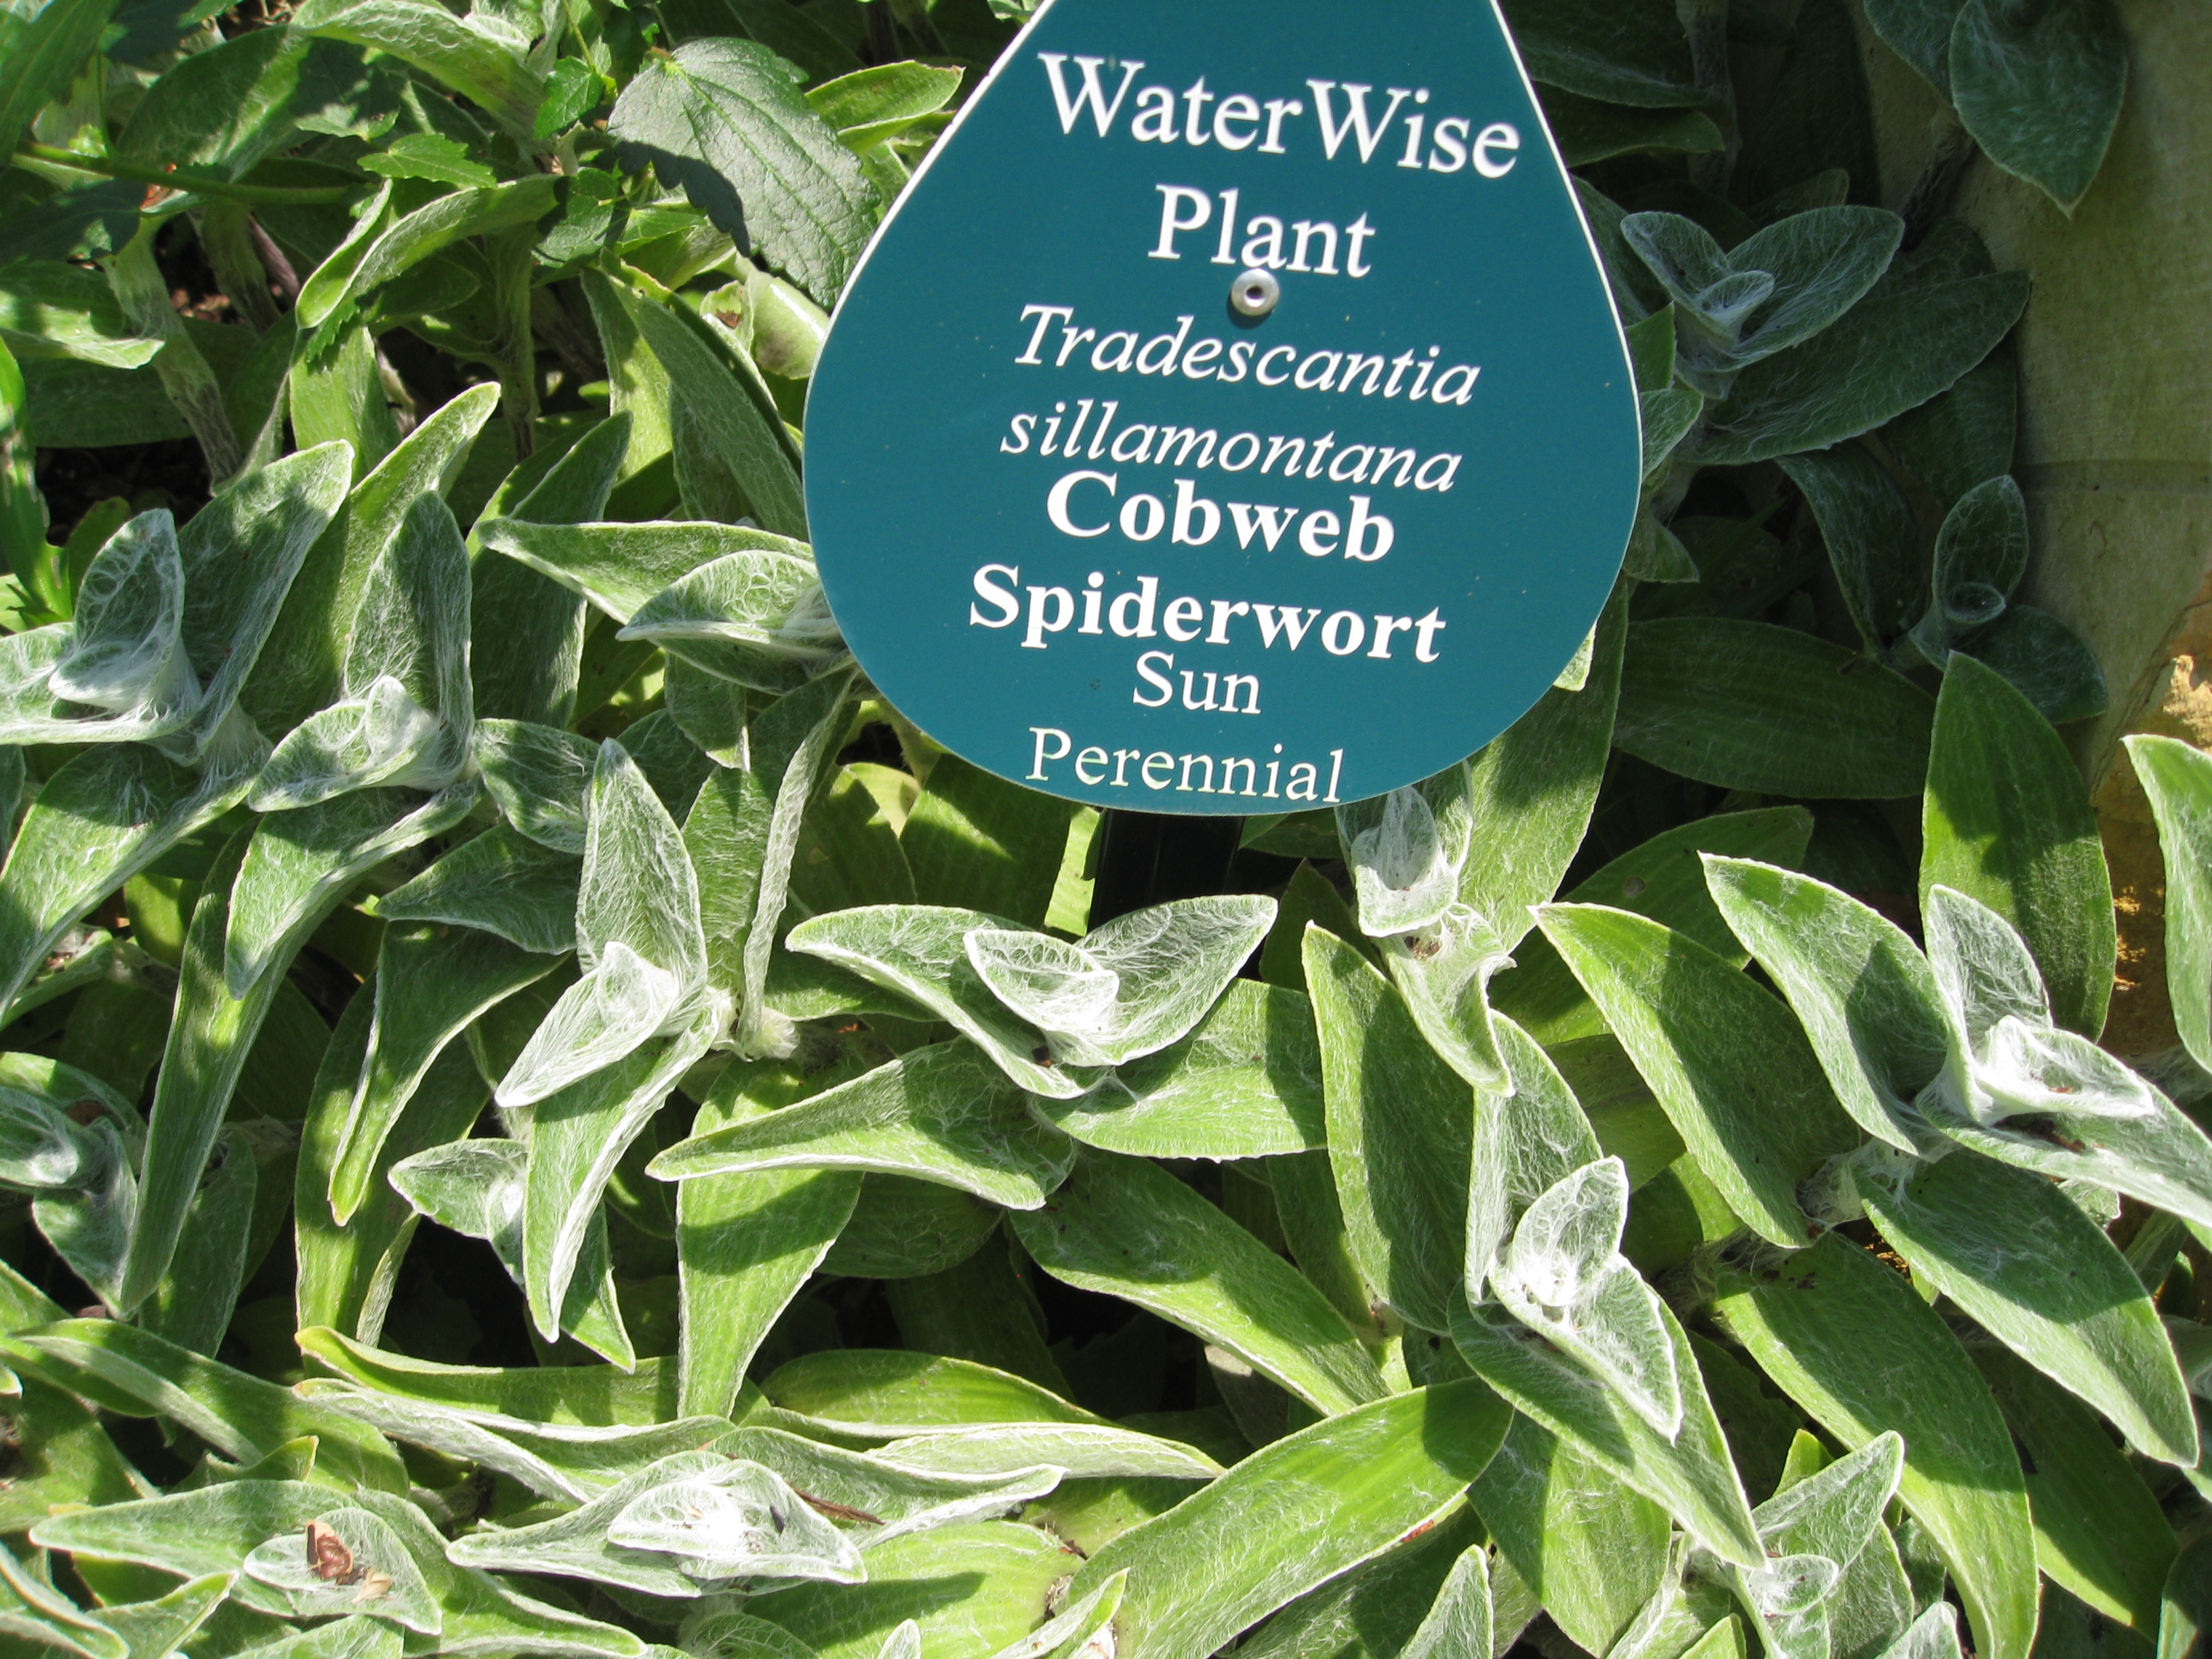 Cobweb Spiderwort is an unusual and macabre water-wise plant.